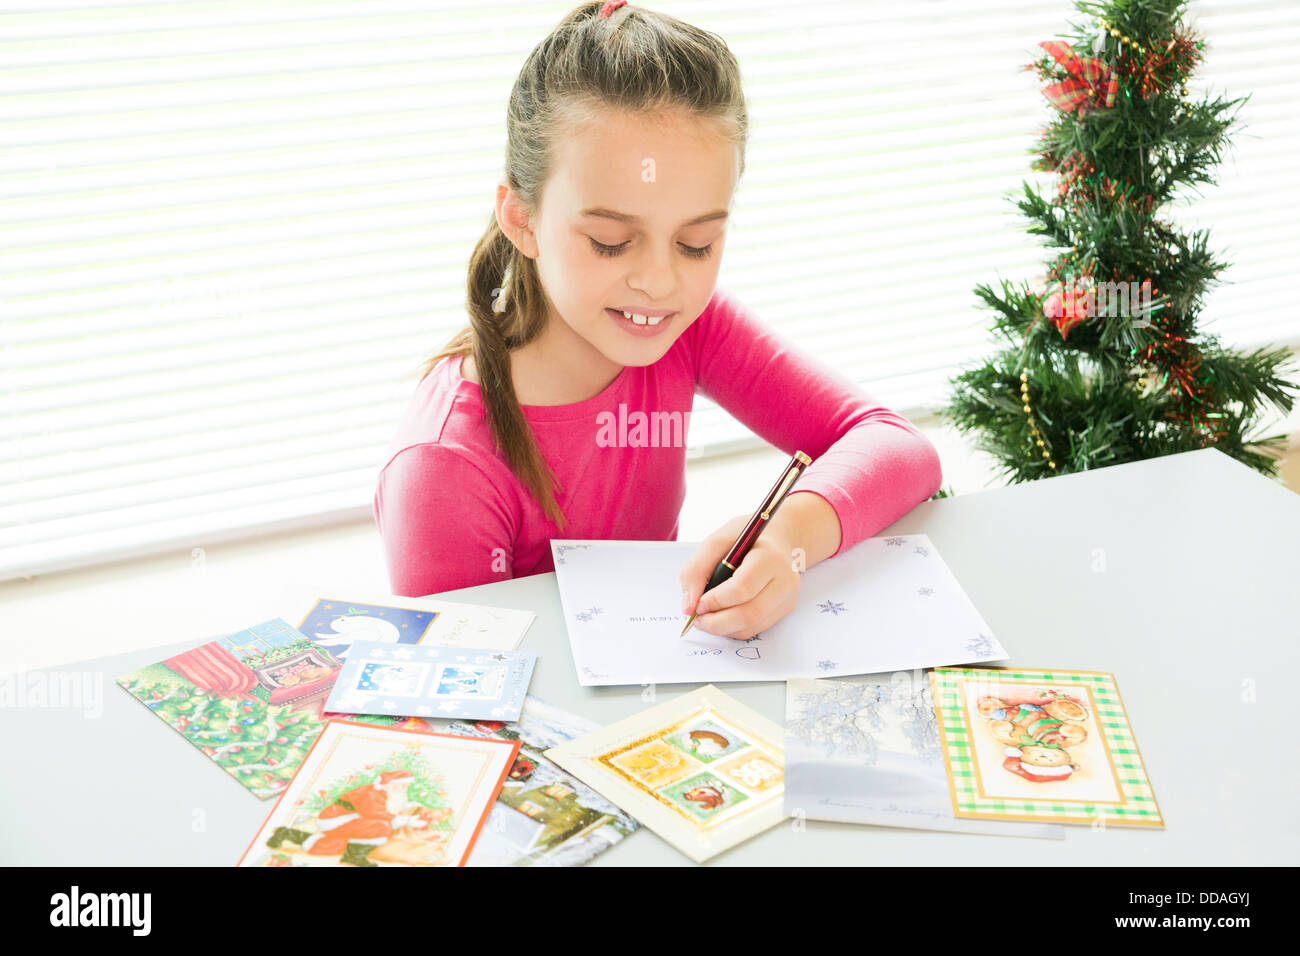 young girl filling in christmas cards stock photo 59854470 alamy